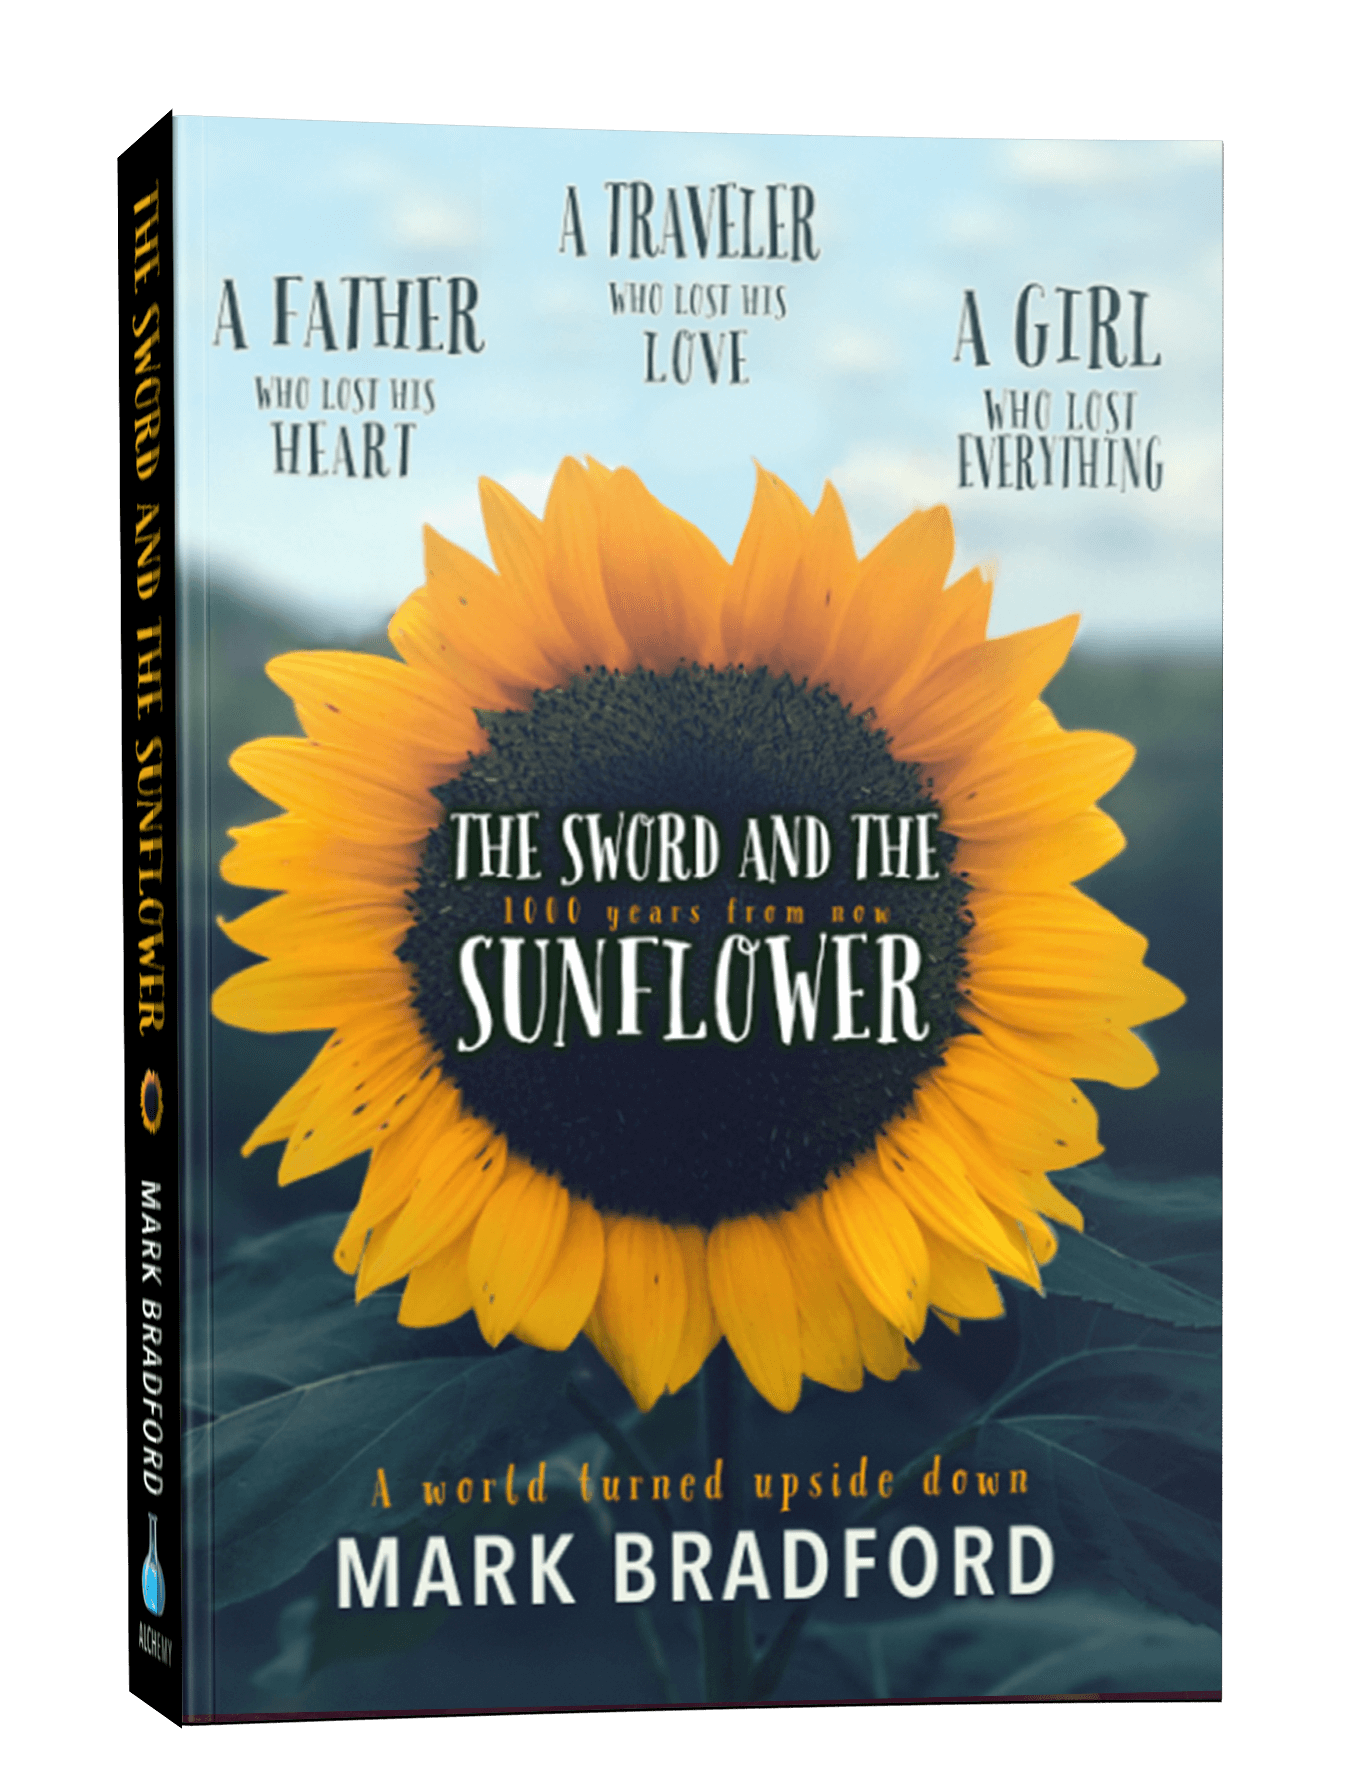 The Sword and the Sunflower epic fiction fantasy sci-fi